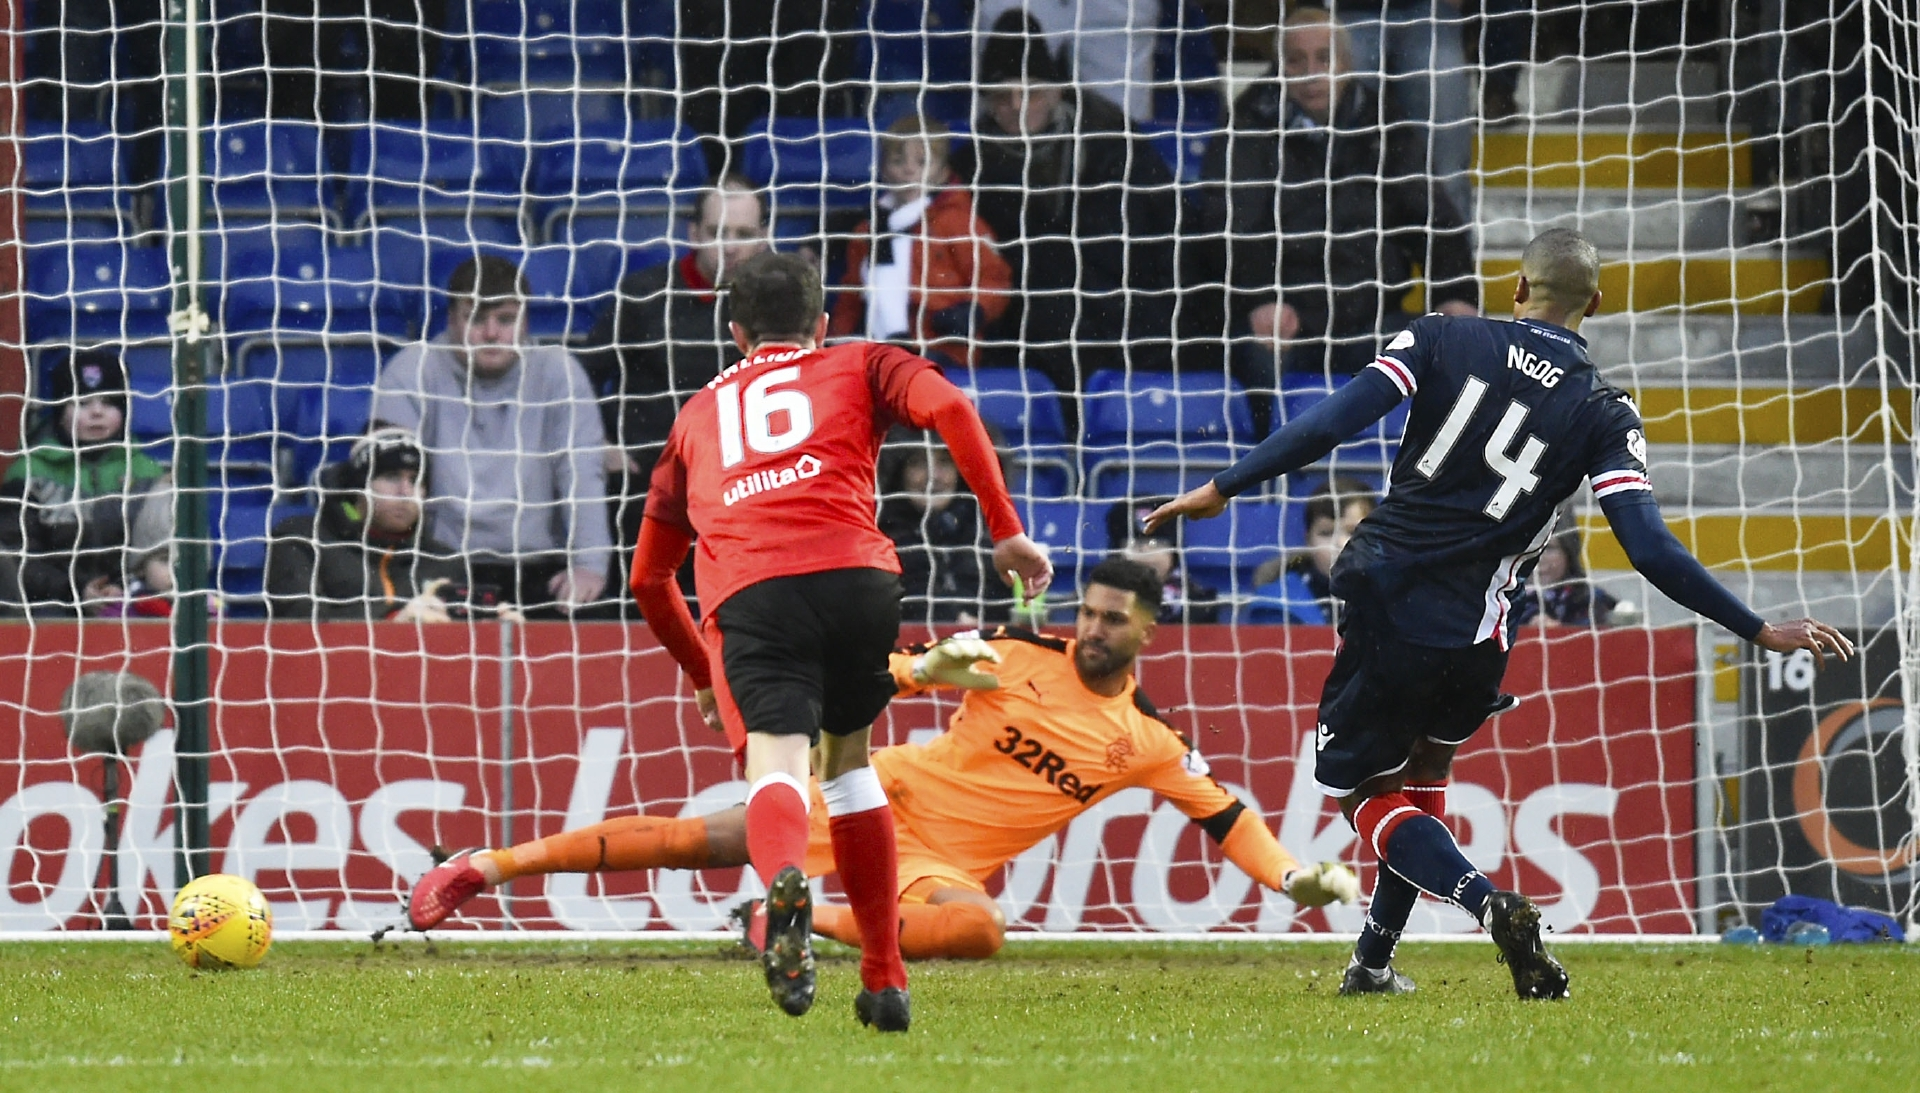 Ross County's David N'Gog scores a penalty in the sides' meeting in January 2018.